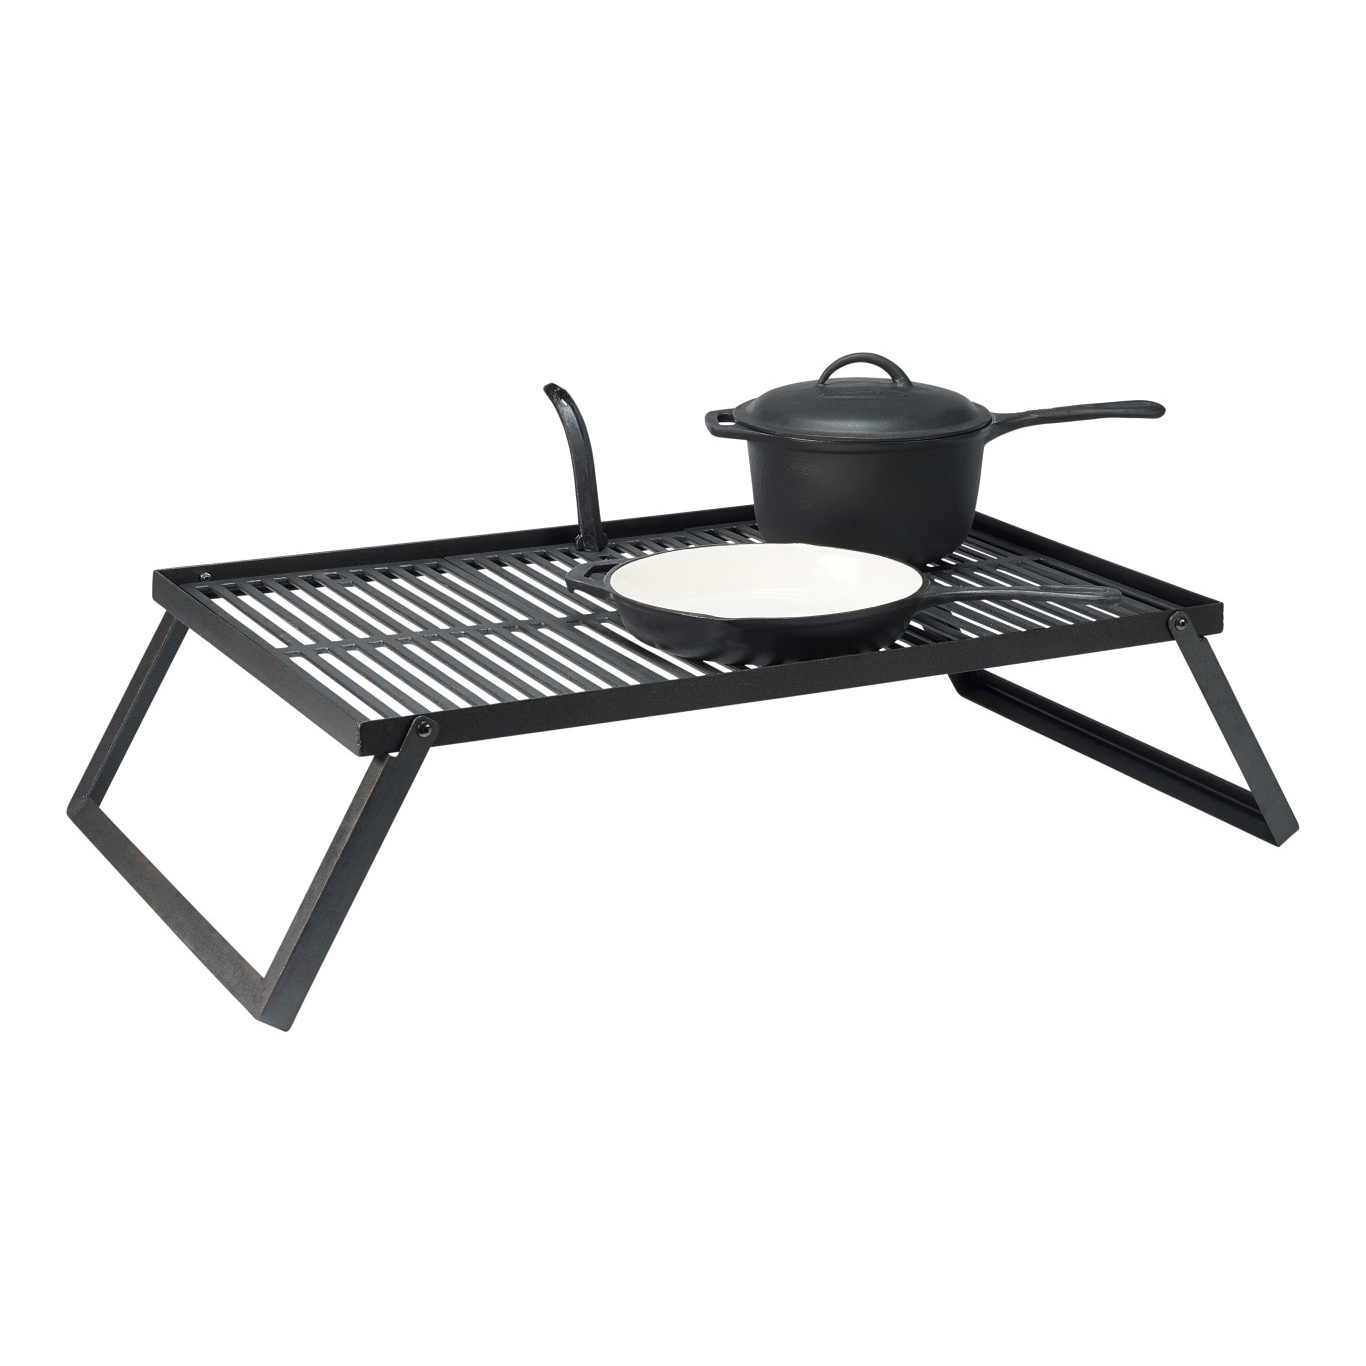 Grill rooster & platen